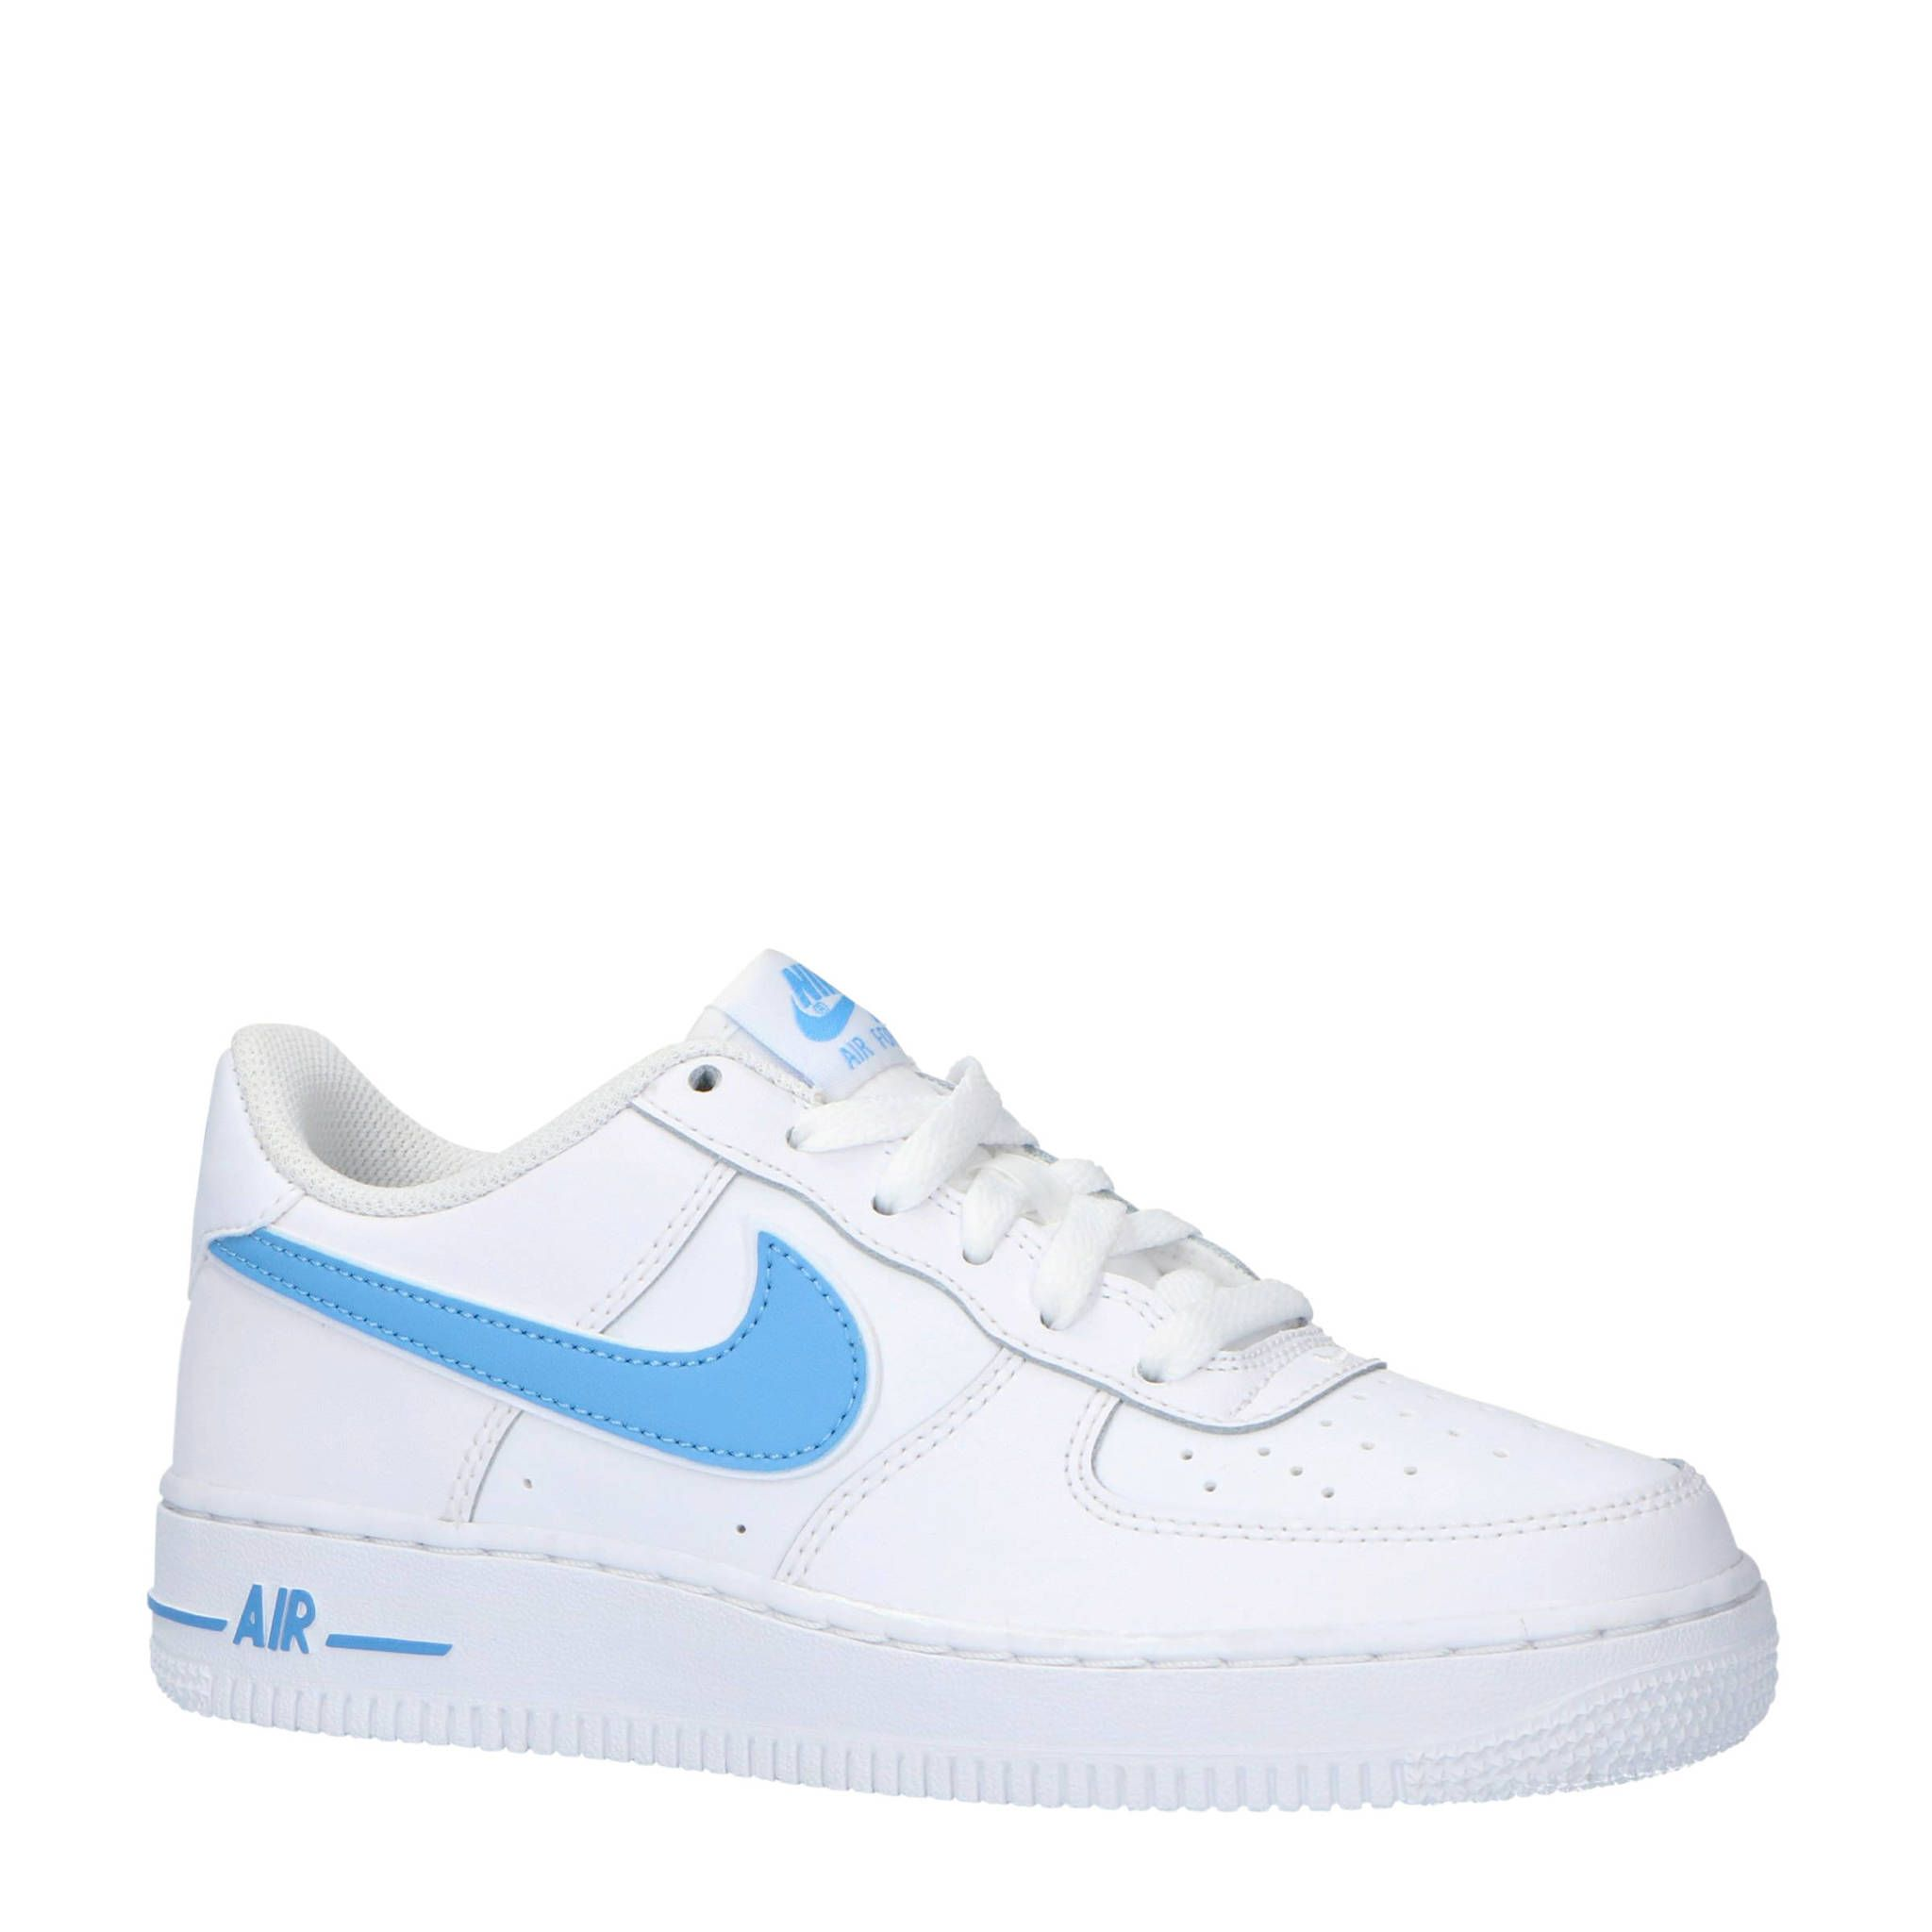 Air Force 1-3 (GS) sneakers leer wit/lichtblauw | Nike ...